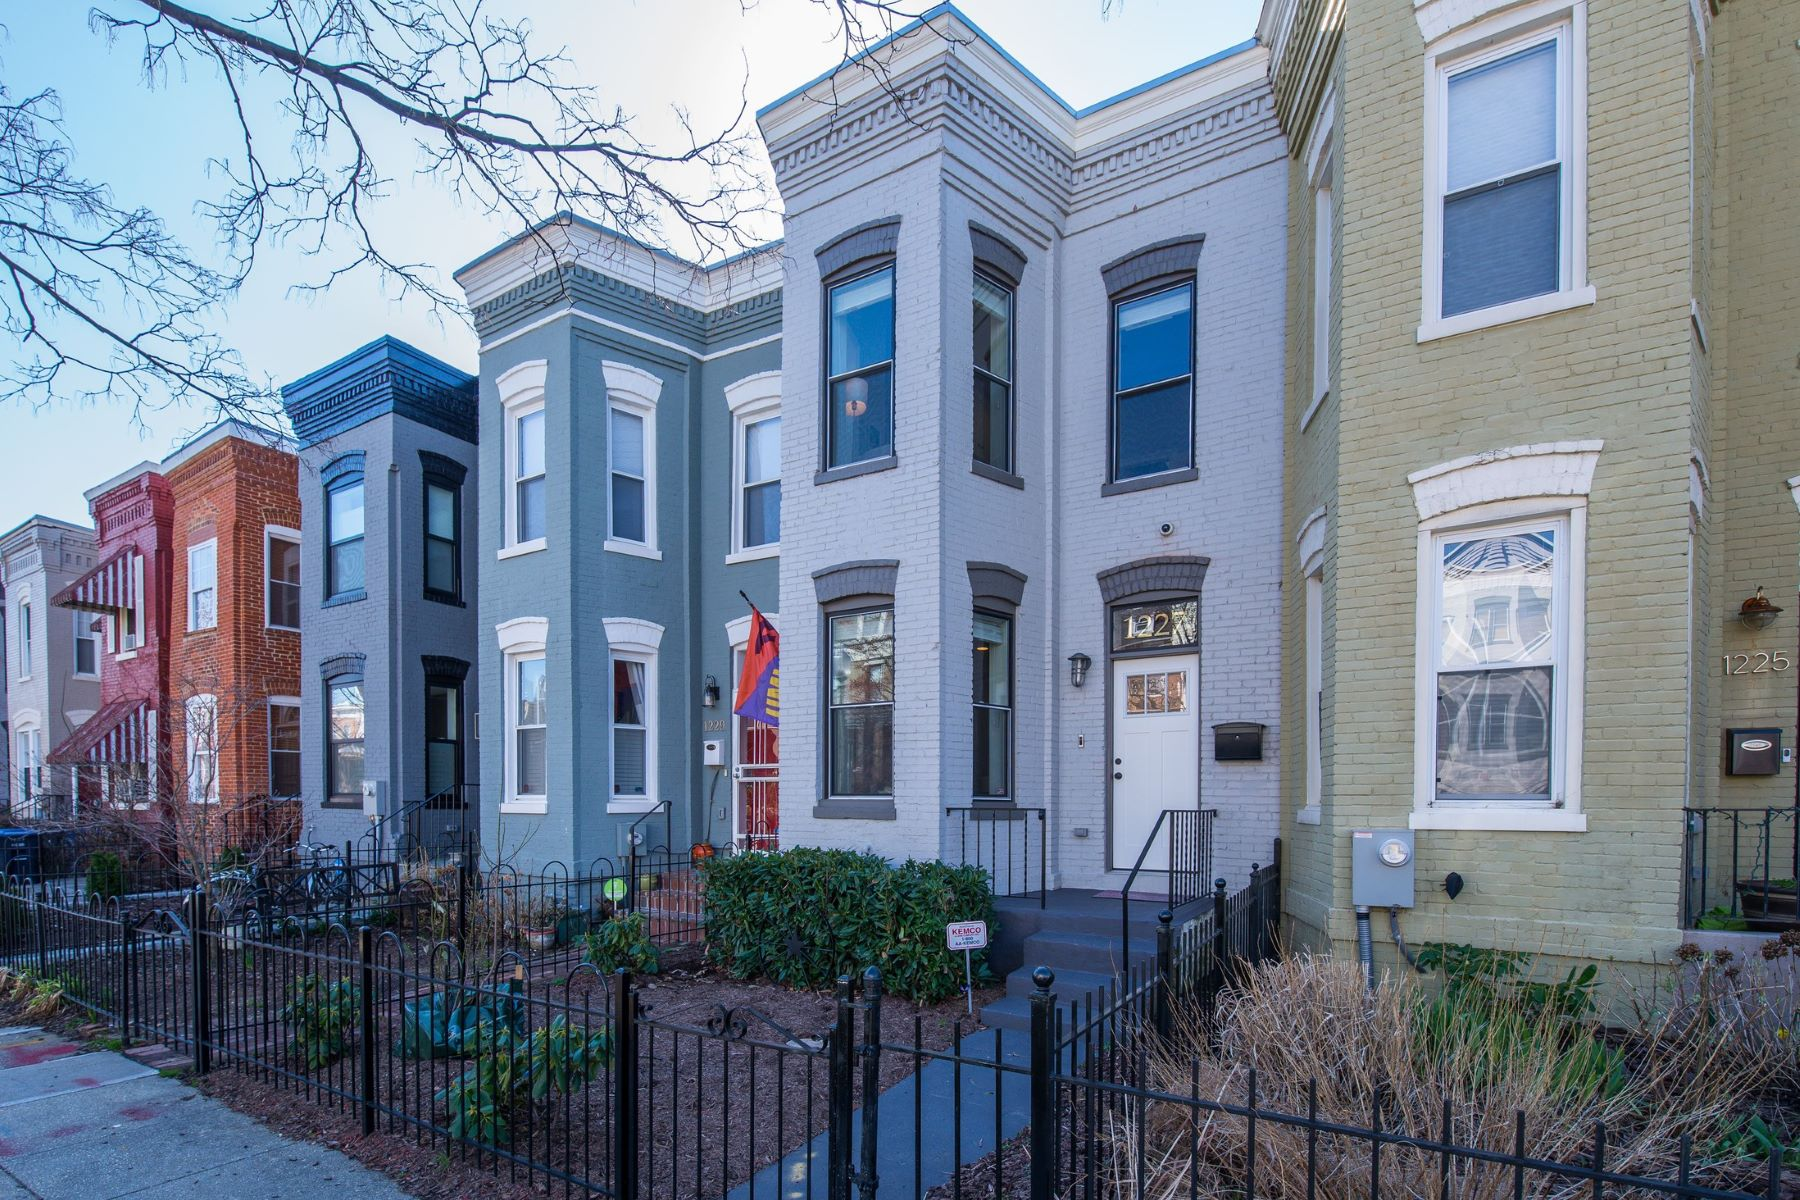 Single Family Home for Sale at Renovated and Stunning 3 BR/2.5 BA Near H Street 1227 I Street NE Washington, District Of Columbia 20002 United States